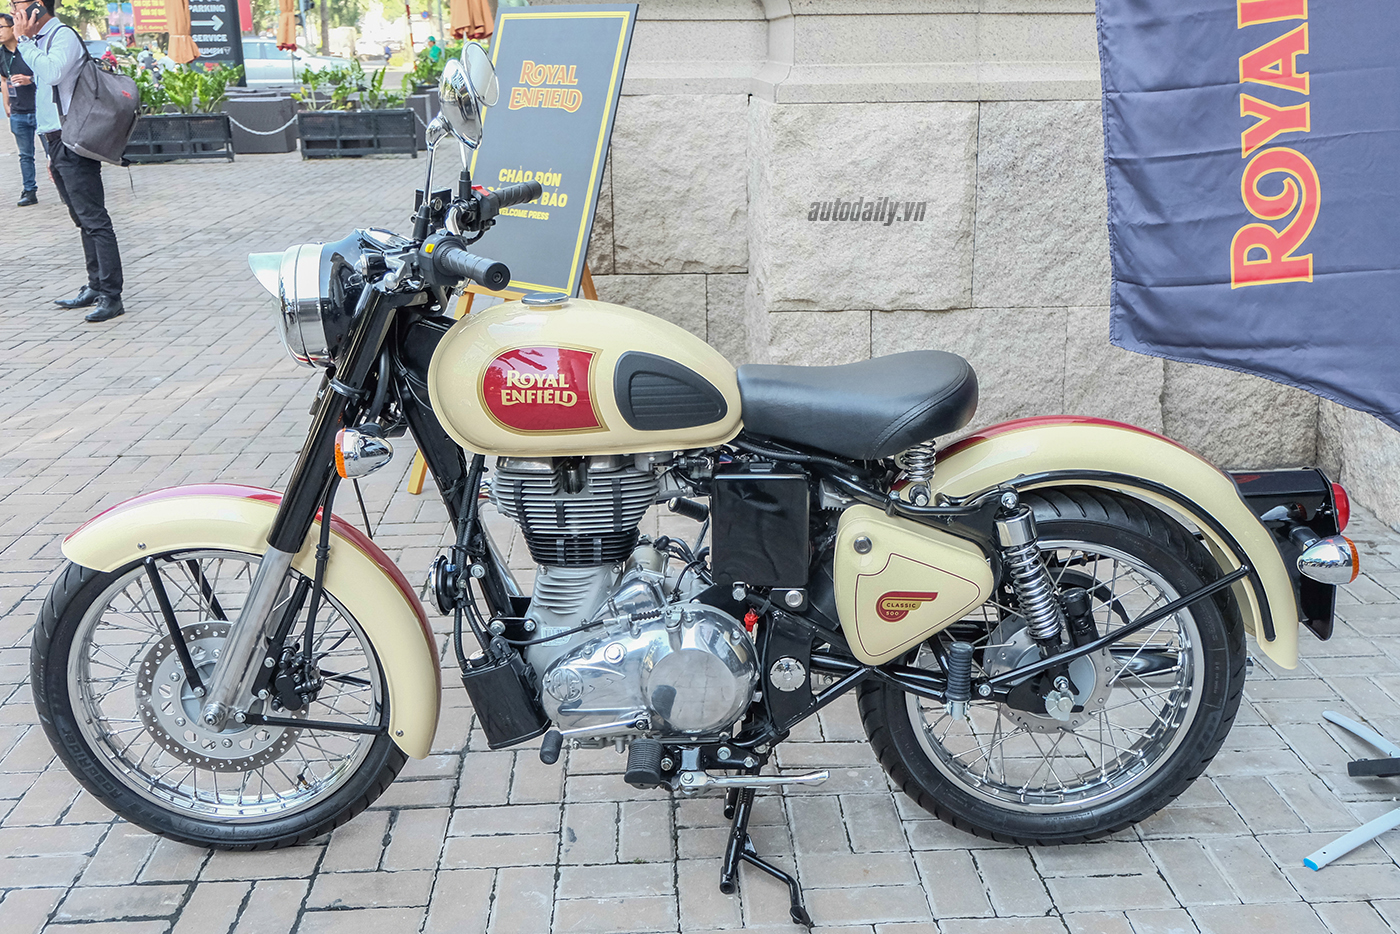 royal-enfield-11.jpg